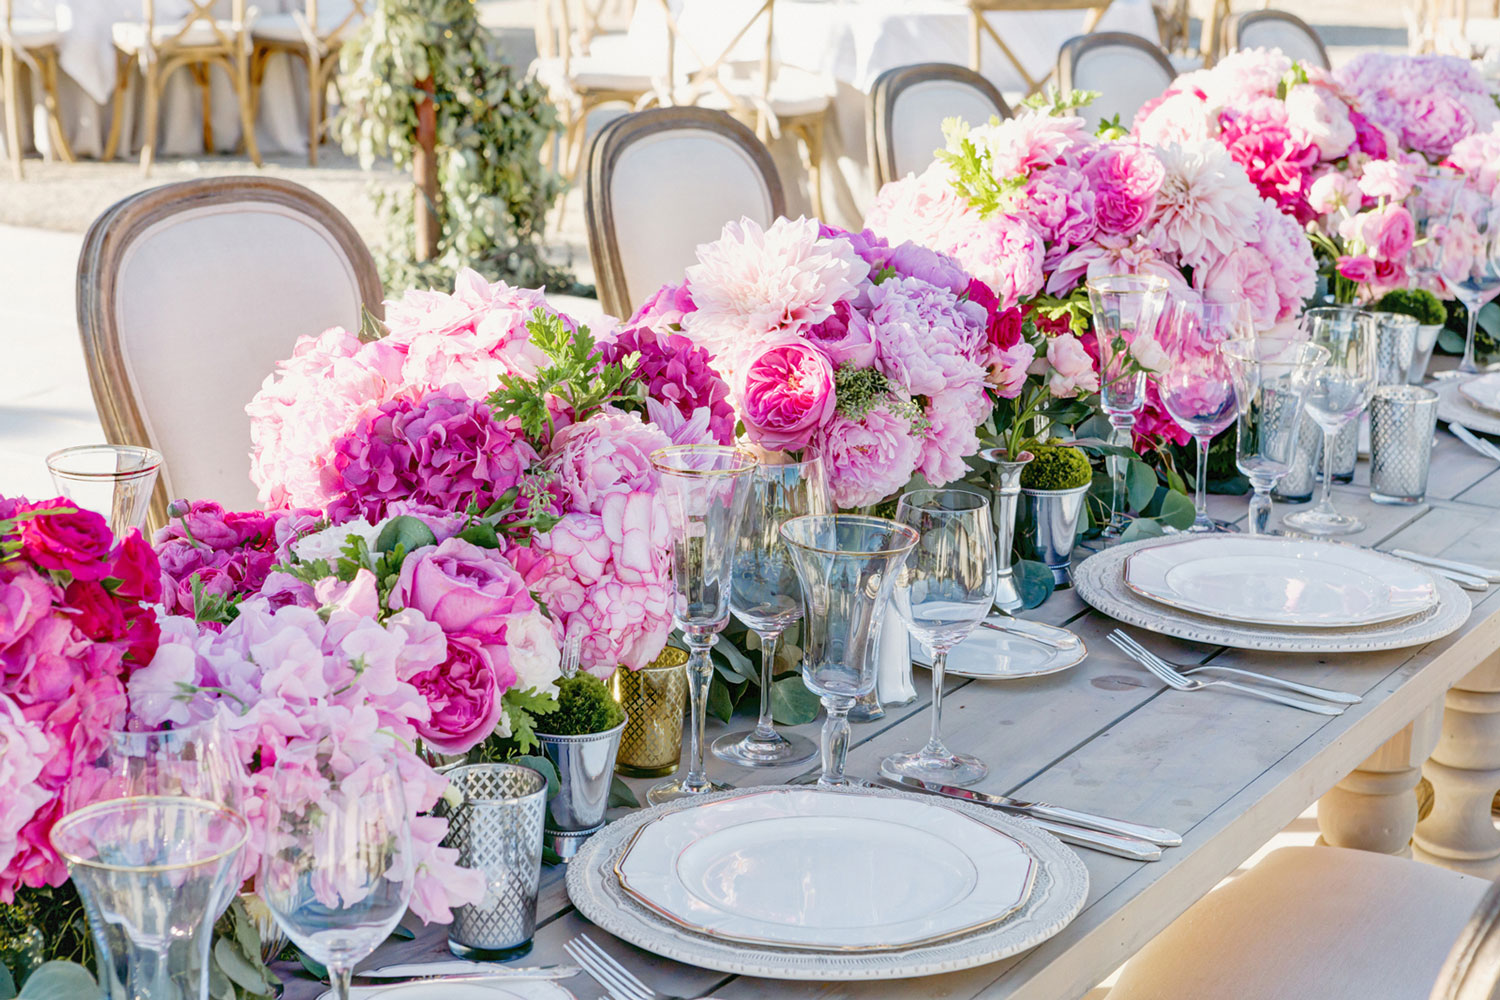 should you rent or buy your wedding decor?